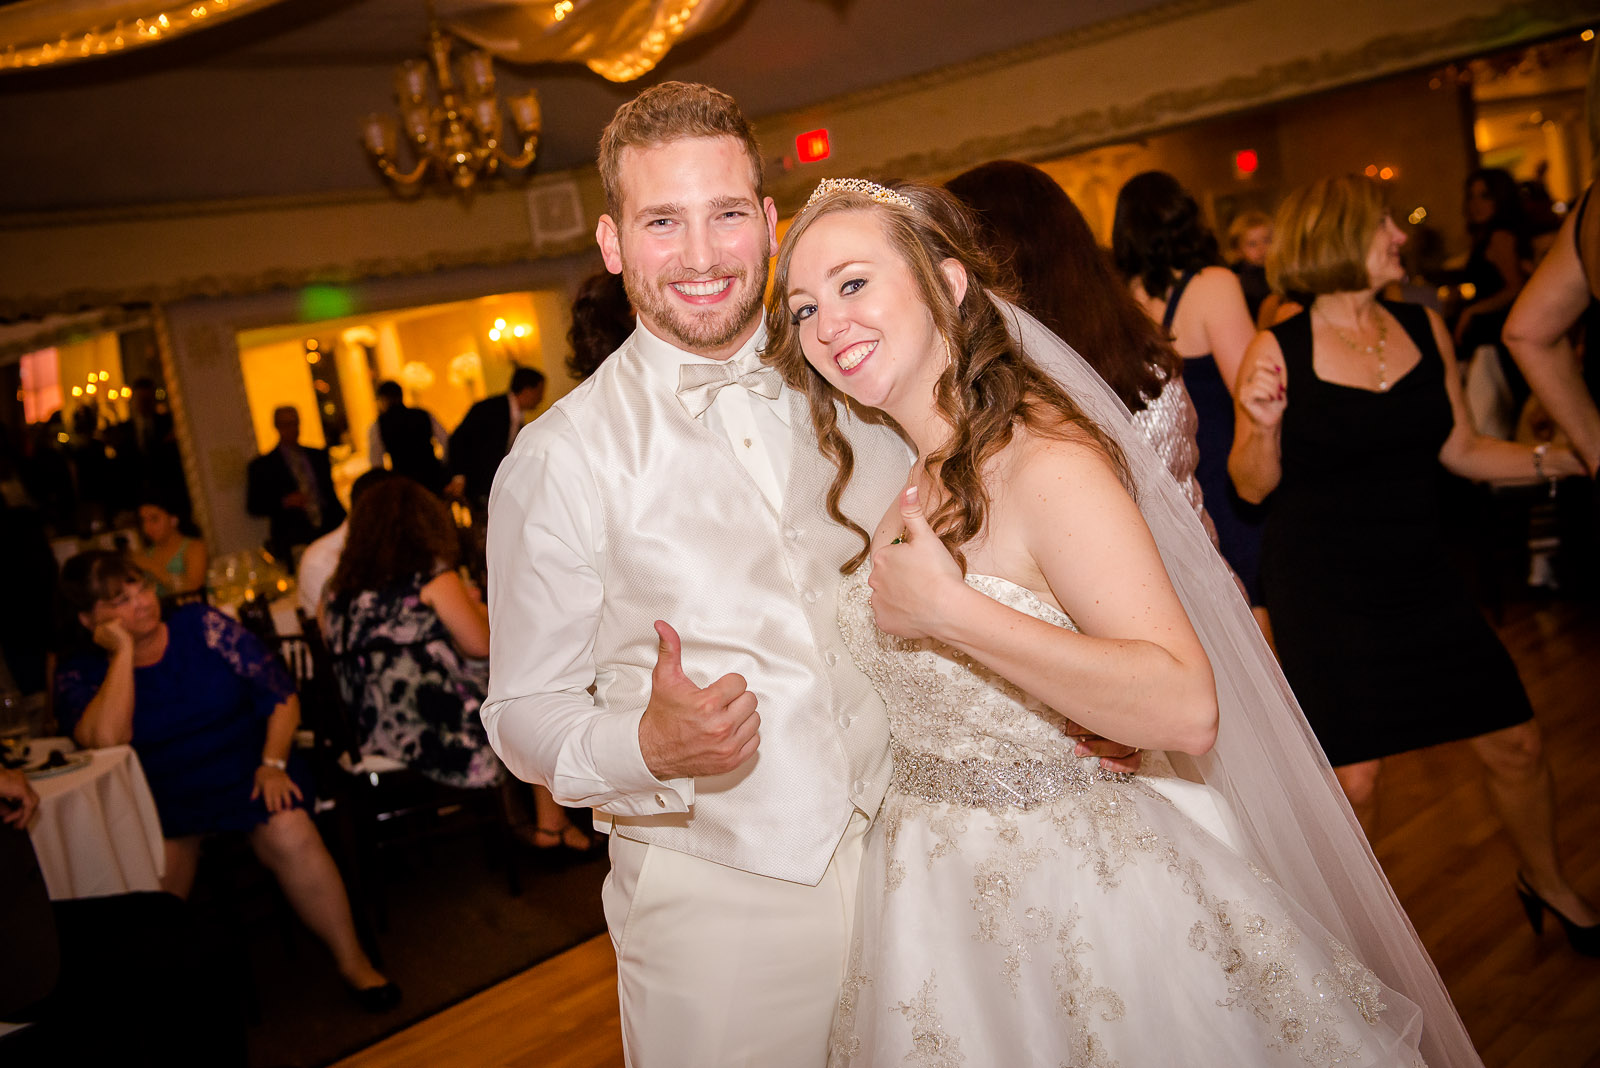 Eric_and_Christy_Photography_Blog_Wedding_Eva_Andrew-66